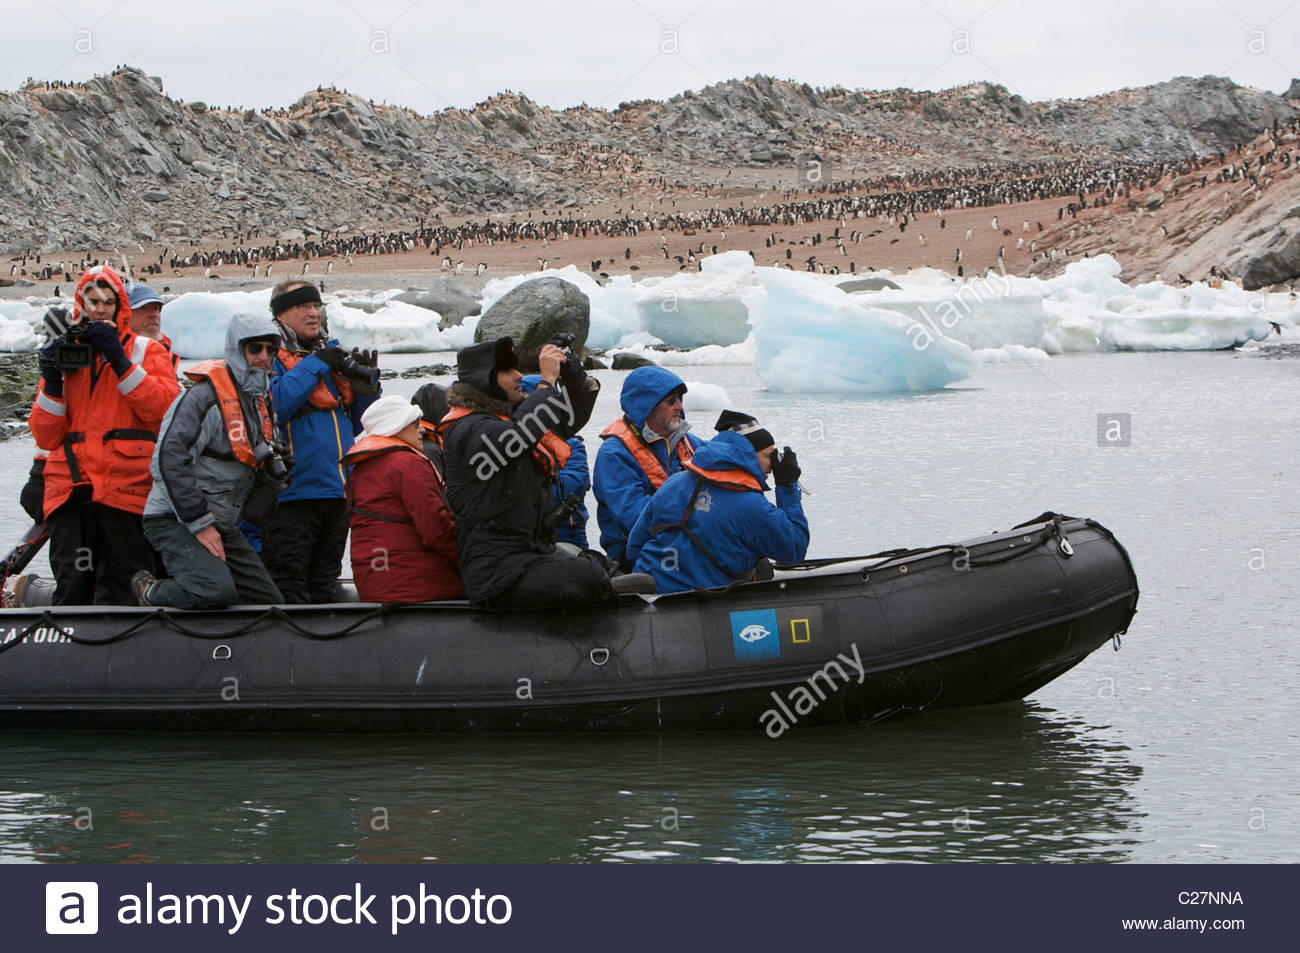 Inflatable boat tour at Heroina Island adelie penguin colony. - Stock Image